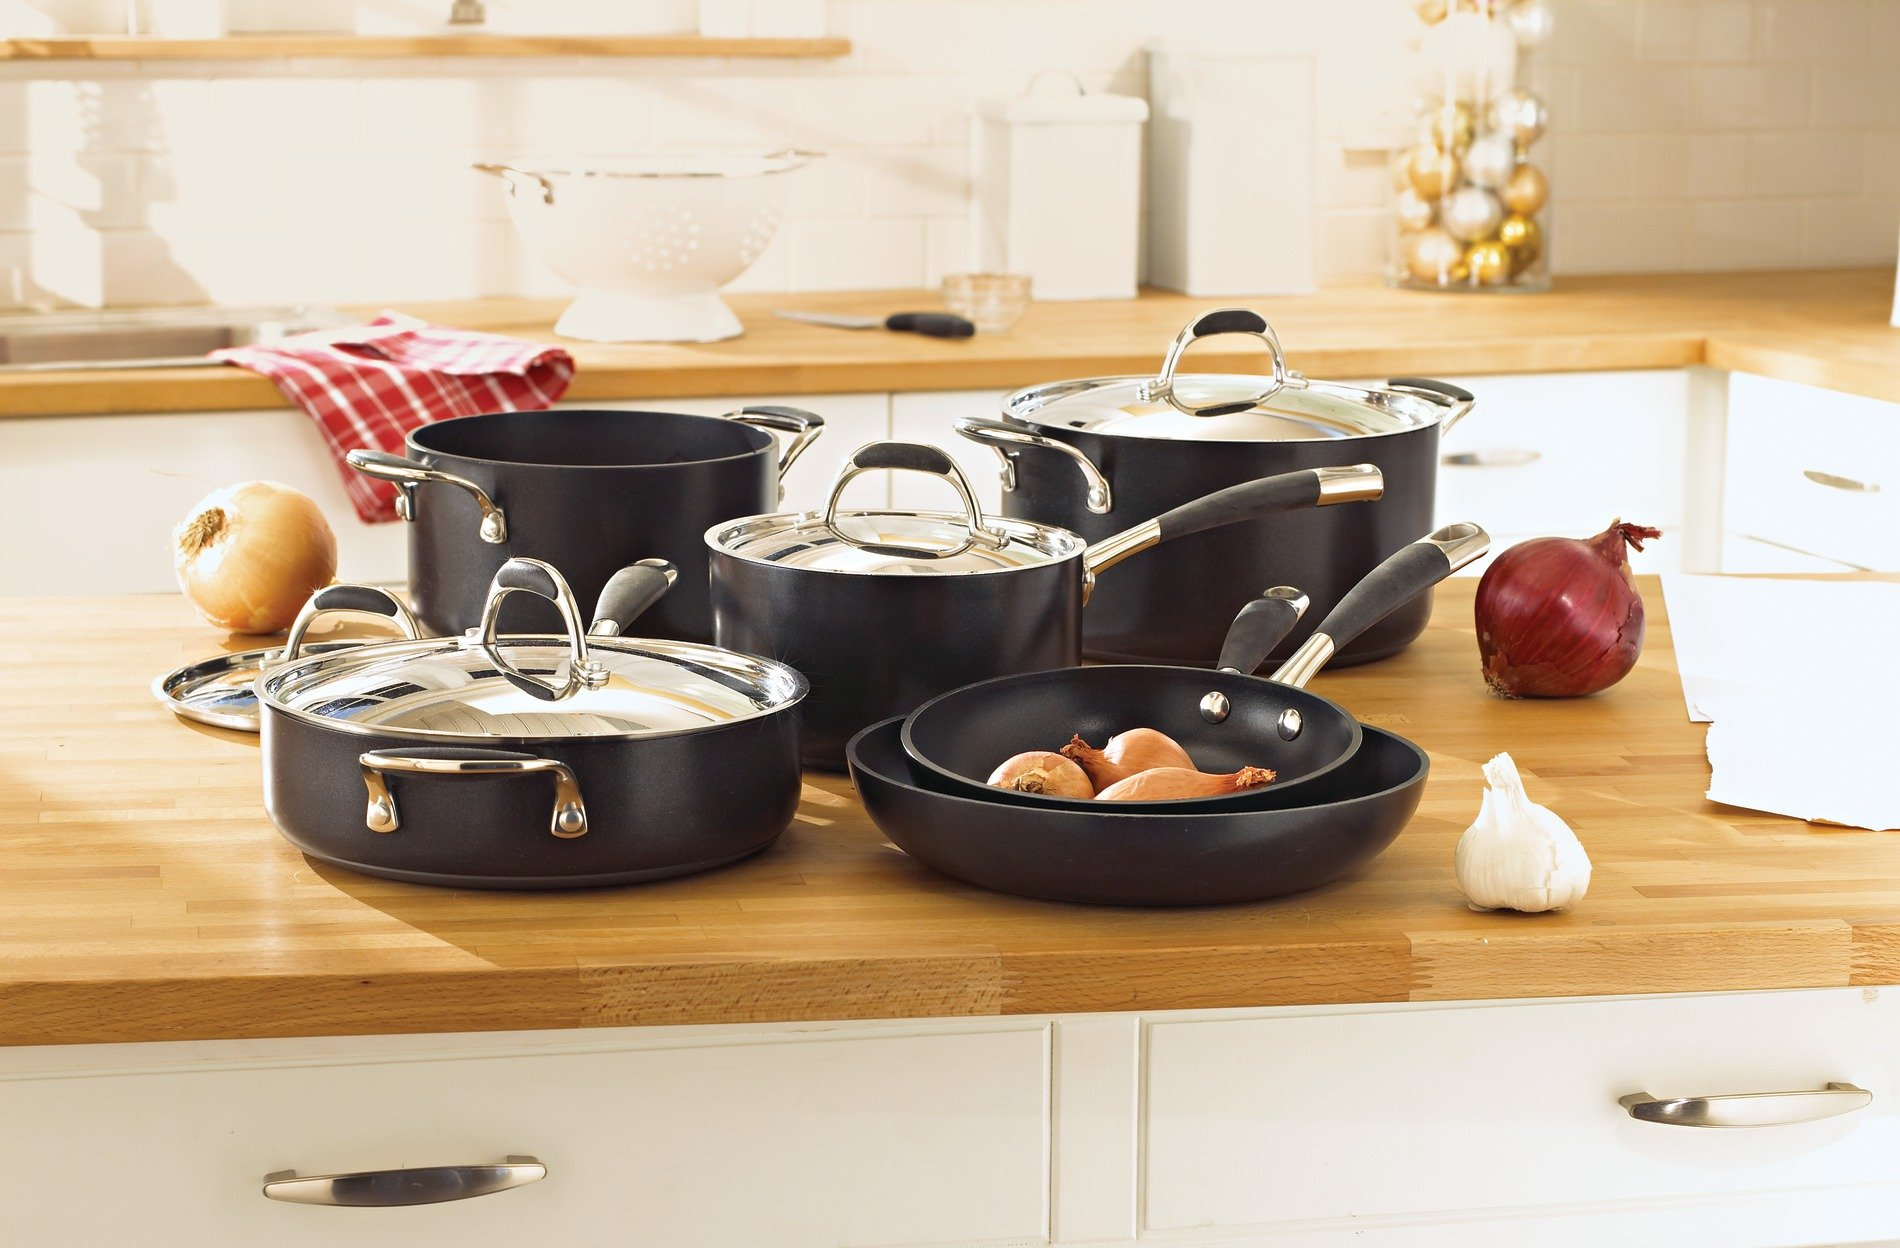 Kenmore 89590 10 Piece Hard Anodized Interior Cookware Set in Black